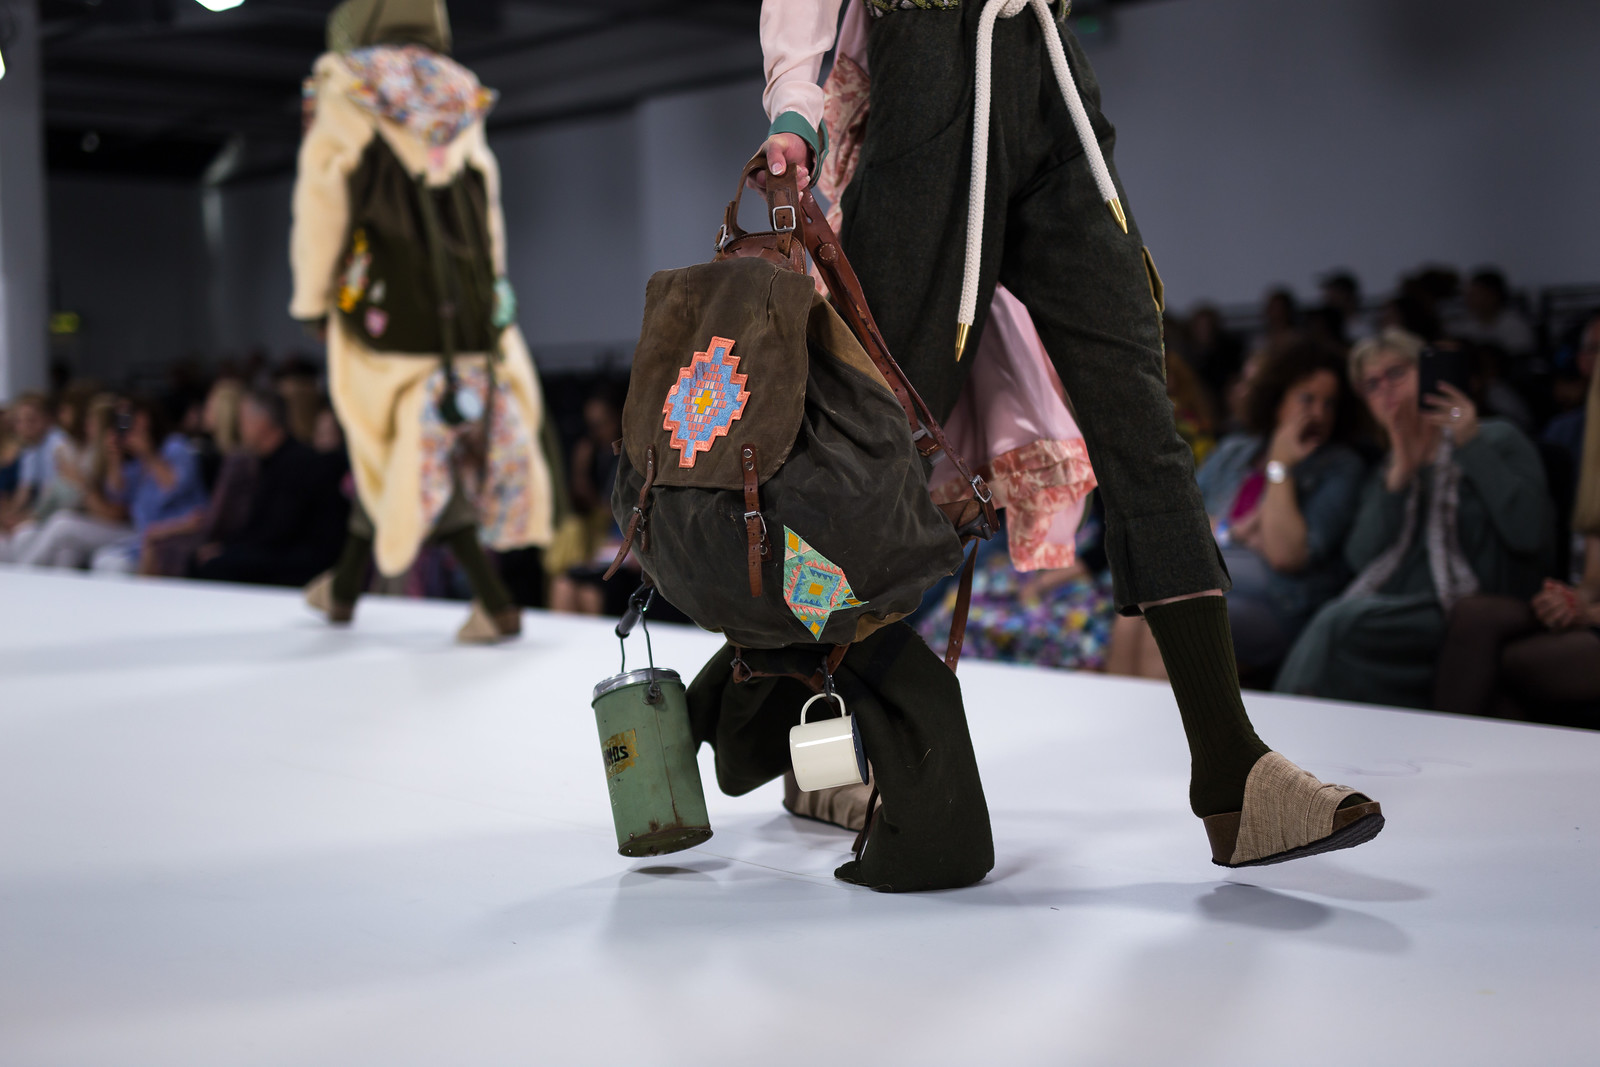 University of Central Lancashire, Graduate Fashion Week